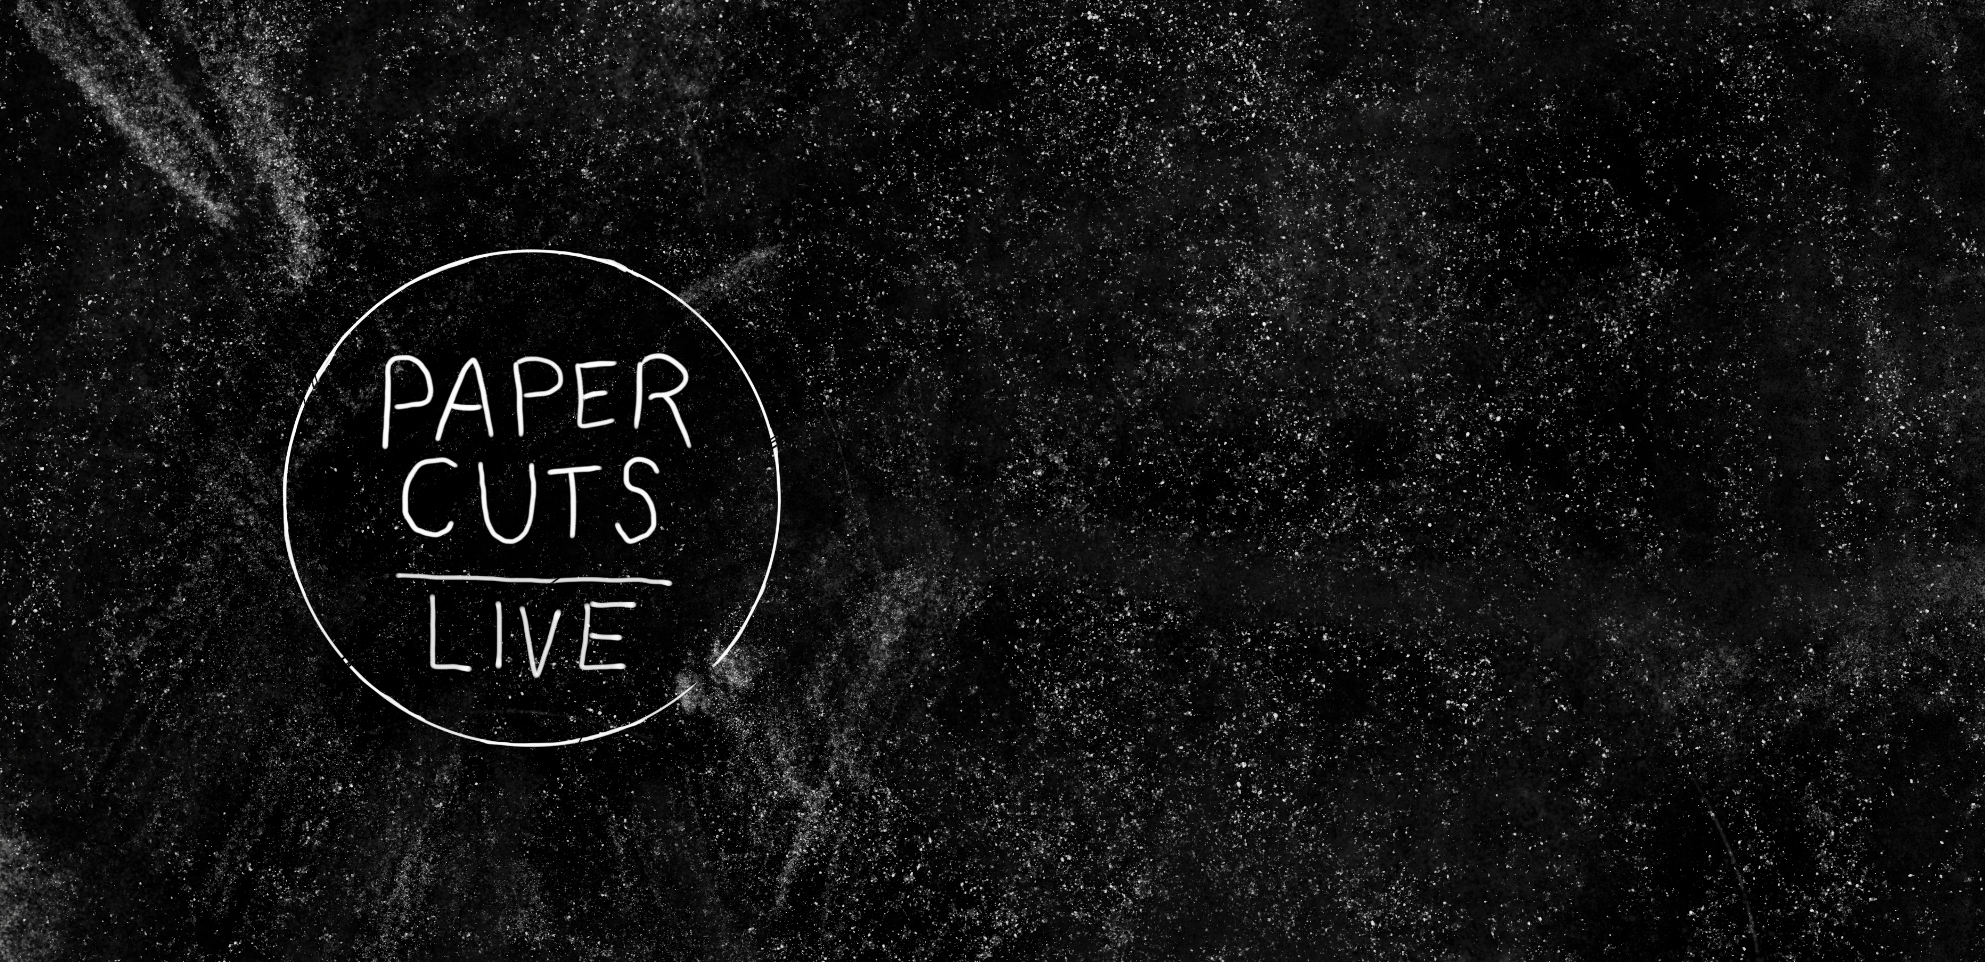 PAPER CUTS IS TAKING OVER THE BOOKSHELVES AT THE WASHINGTON PROJECT FOR THE ARTS FROM FEBRUARY 16TH TO JULY 5TH, 2018